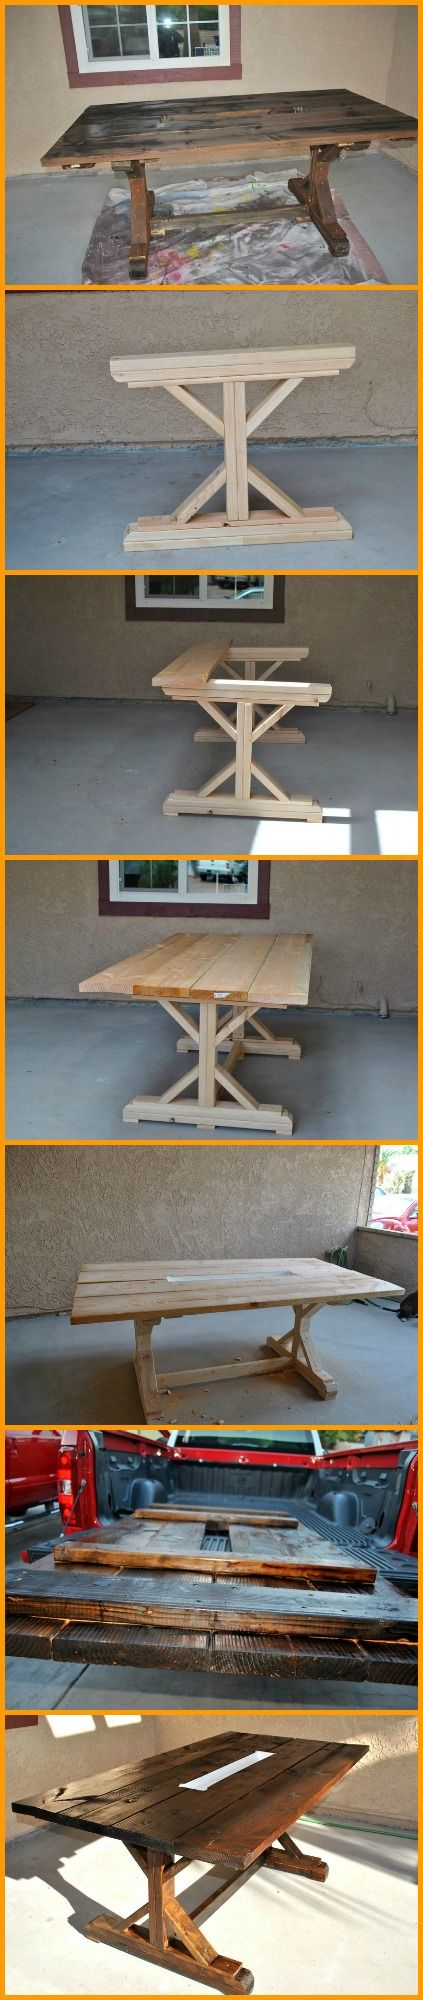 This rustic looking farm table is perfect for outdoor parties in your yard, and it will keep your drinks cool with its inbuilt cooler. The best part is it's easy and cheap to build! To learn how it's made view the full album of the project! go here: http://theownerbuildernetwork.co/yskk